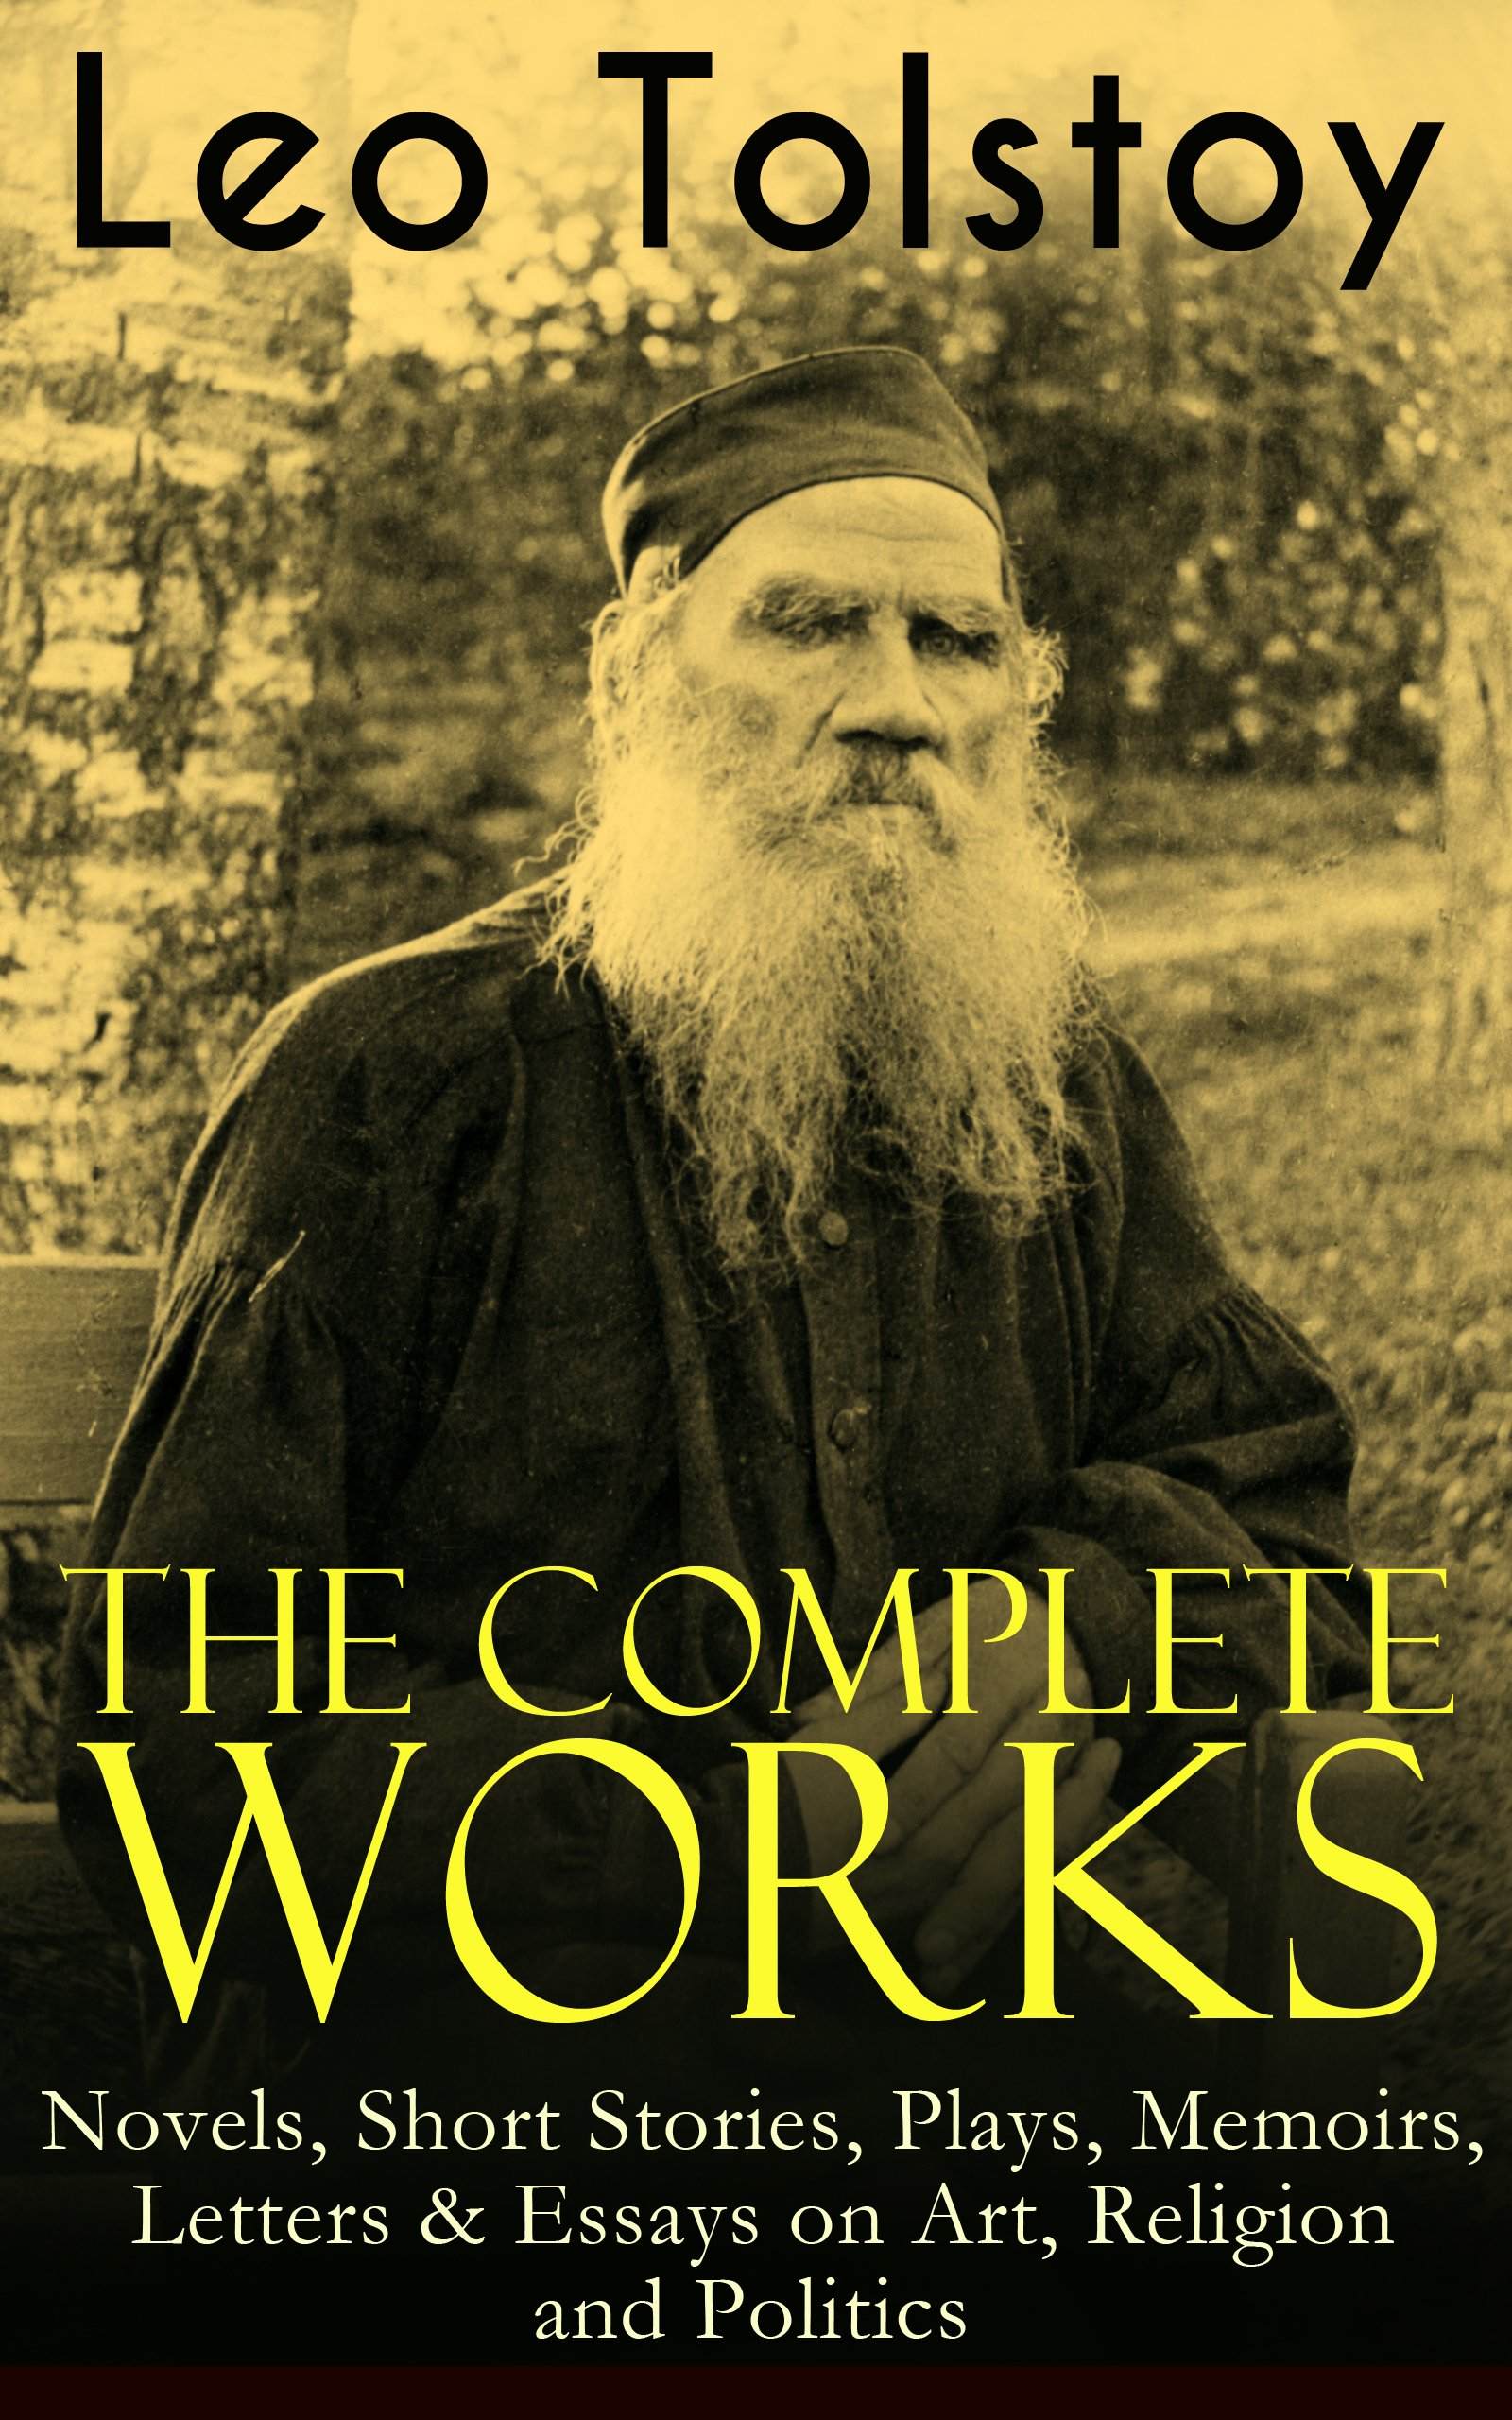 The Complete Works of Leo Tolstoy: Novels, Short Stories, Plays, Memoirs, Letters & Essays on Art, Religion and Politics: Anna Karenina, War and Peace, ... and Stories for Children and Many More (B01DY847BC) Amazon Price History, Amazon Price Tracker